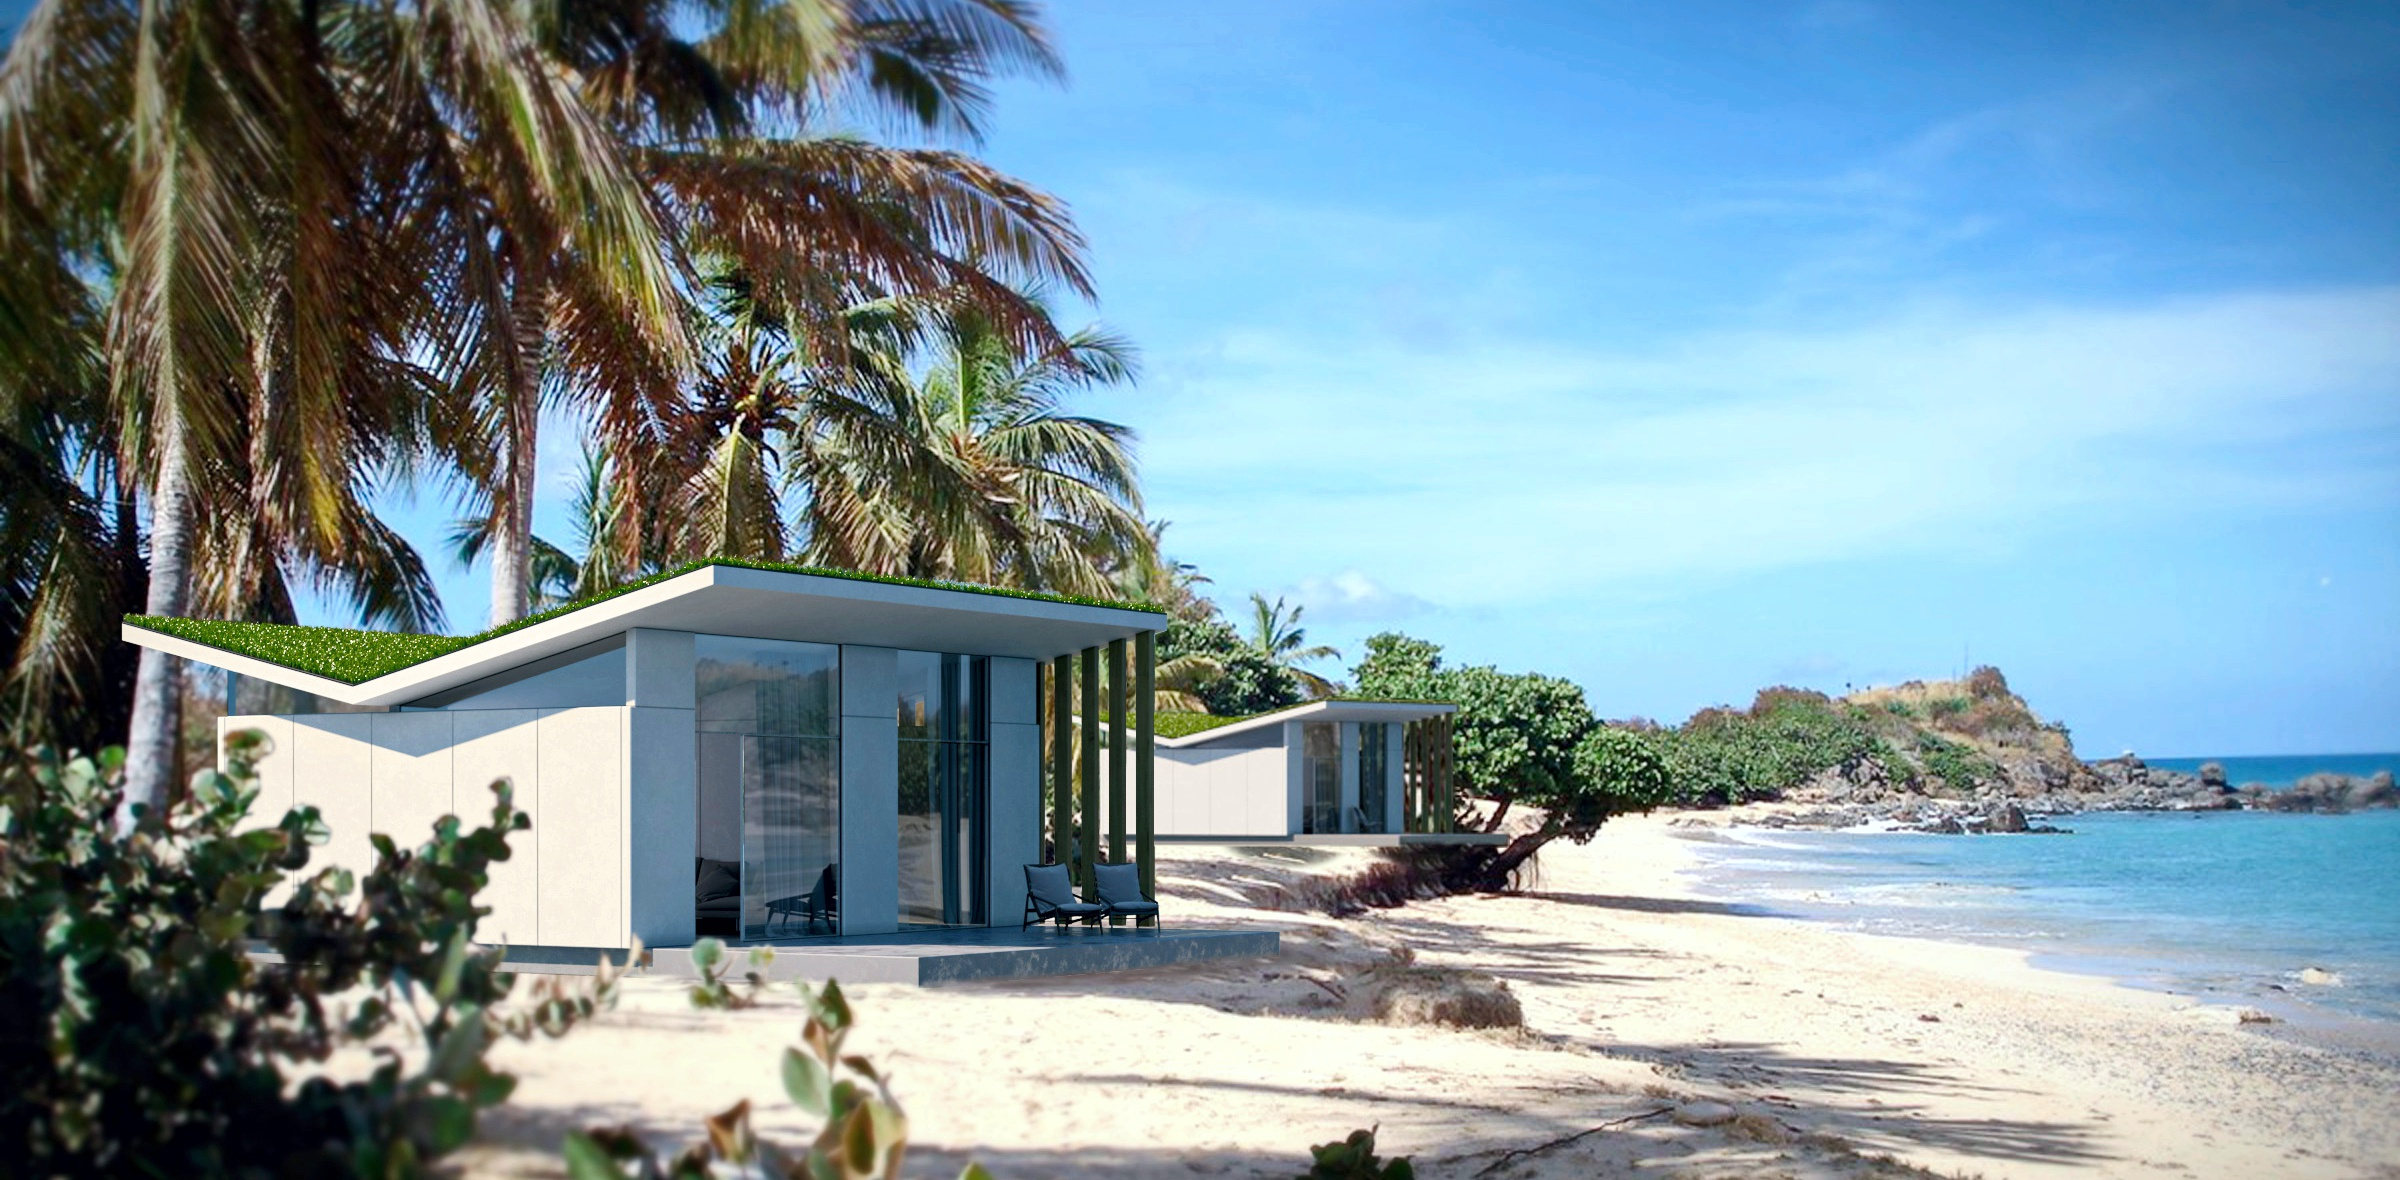 Sophi Luxury bungalows, modular villa, prefab villa, beach house